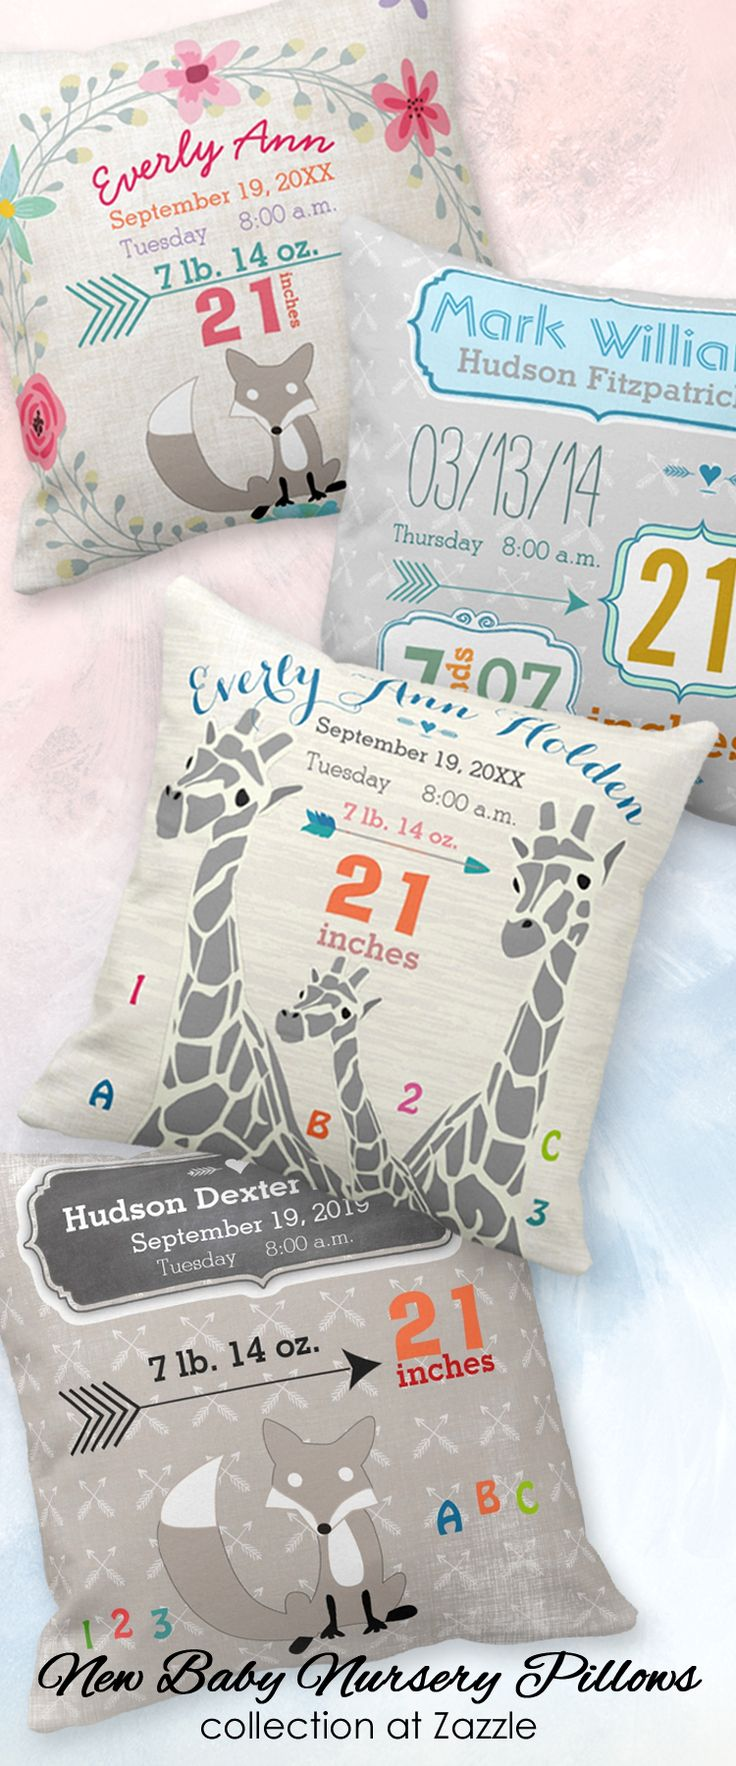 Give the combined gift of a lovely decor item for baby's nursery and keepsake memento for new parents | This adorable collection of new baby birth stats pillows features varied themes for a baby girl or baby boy, including woodland animals and safari animals plus other stylish and trendy themes from which to choose | click to view this large assortment of pillows and other new baby gifts all in one collection ... at Zazzle #newbabygifts #newbabynursery